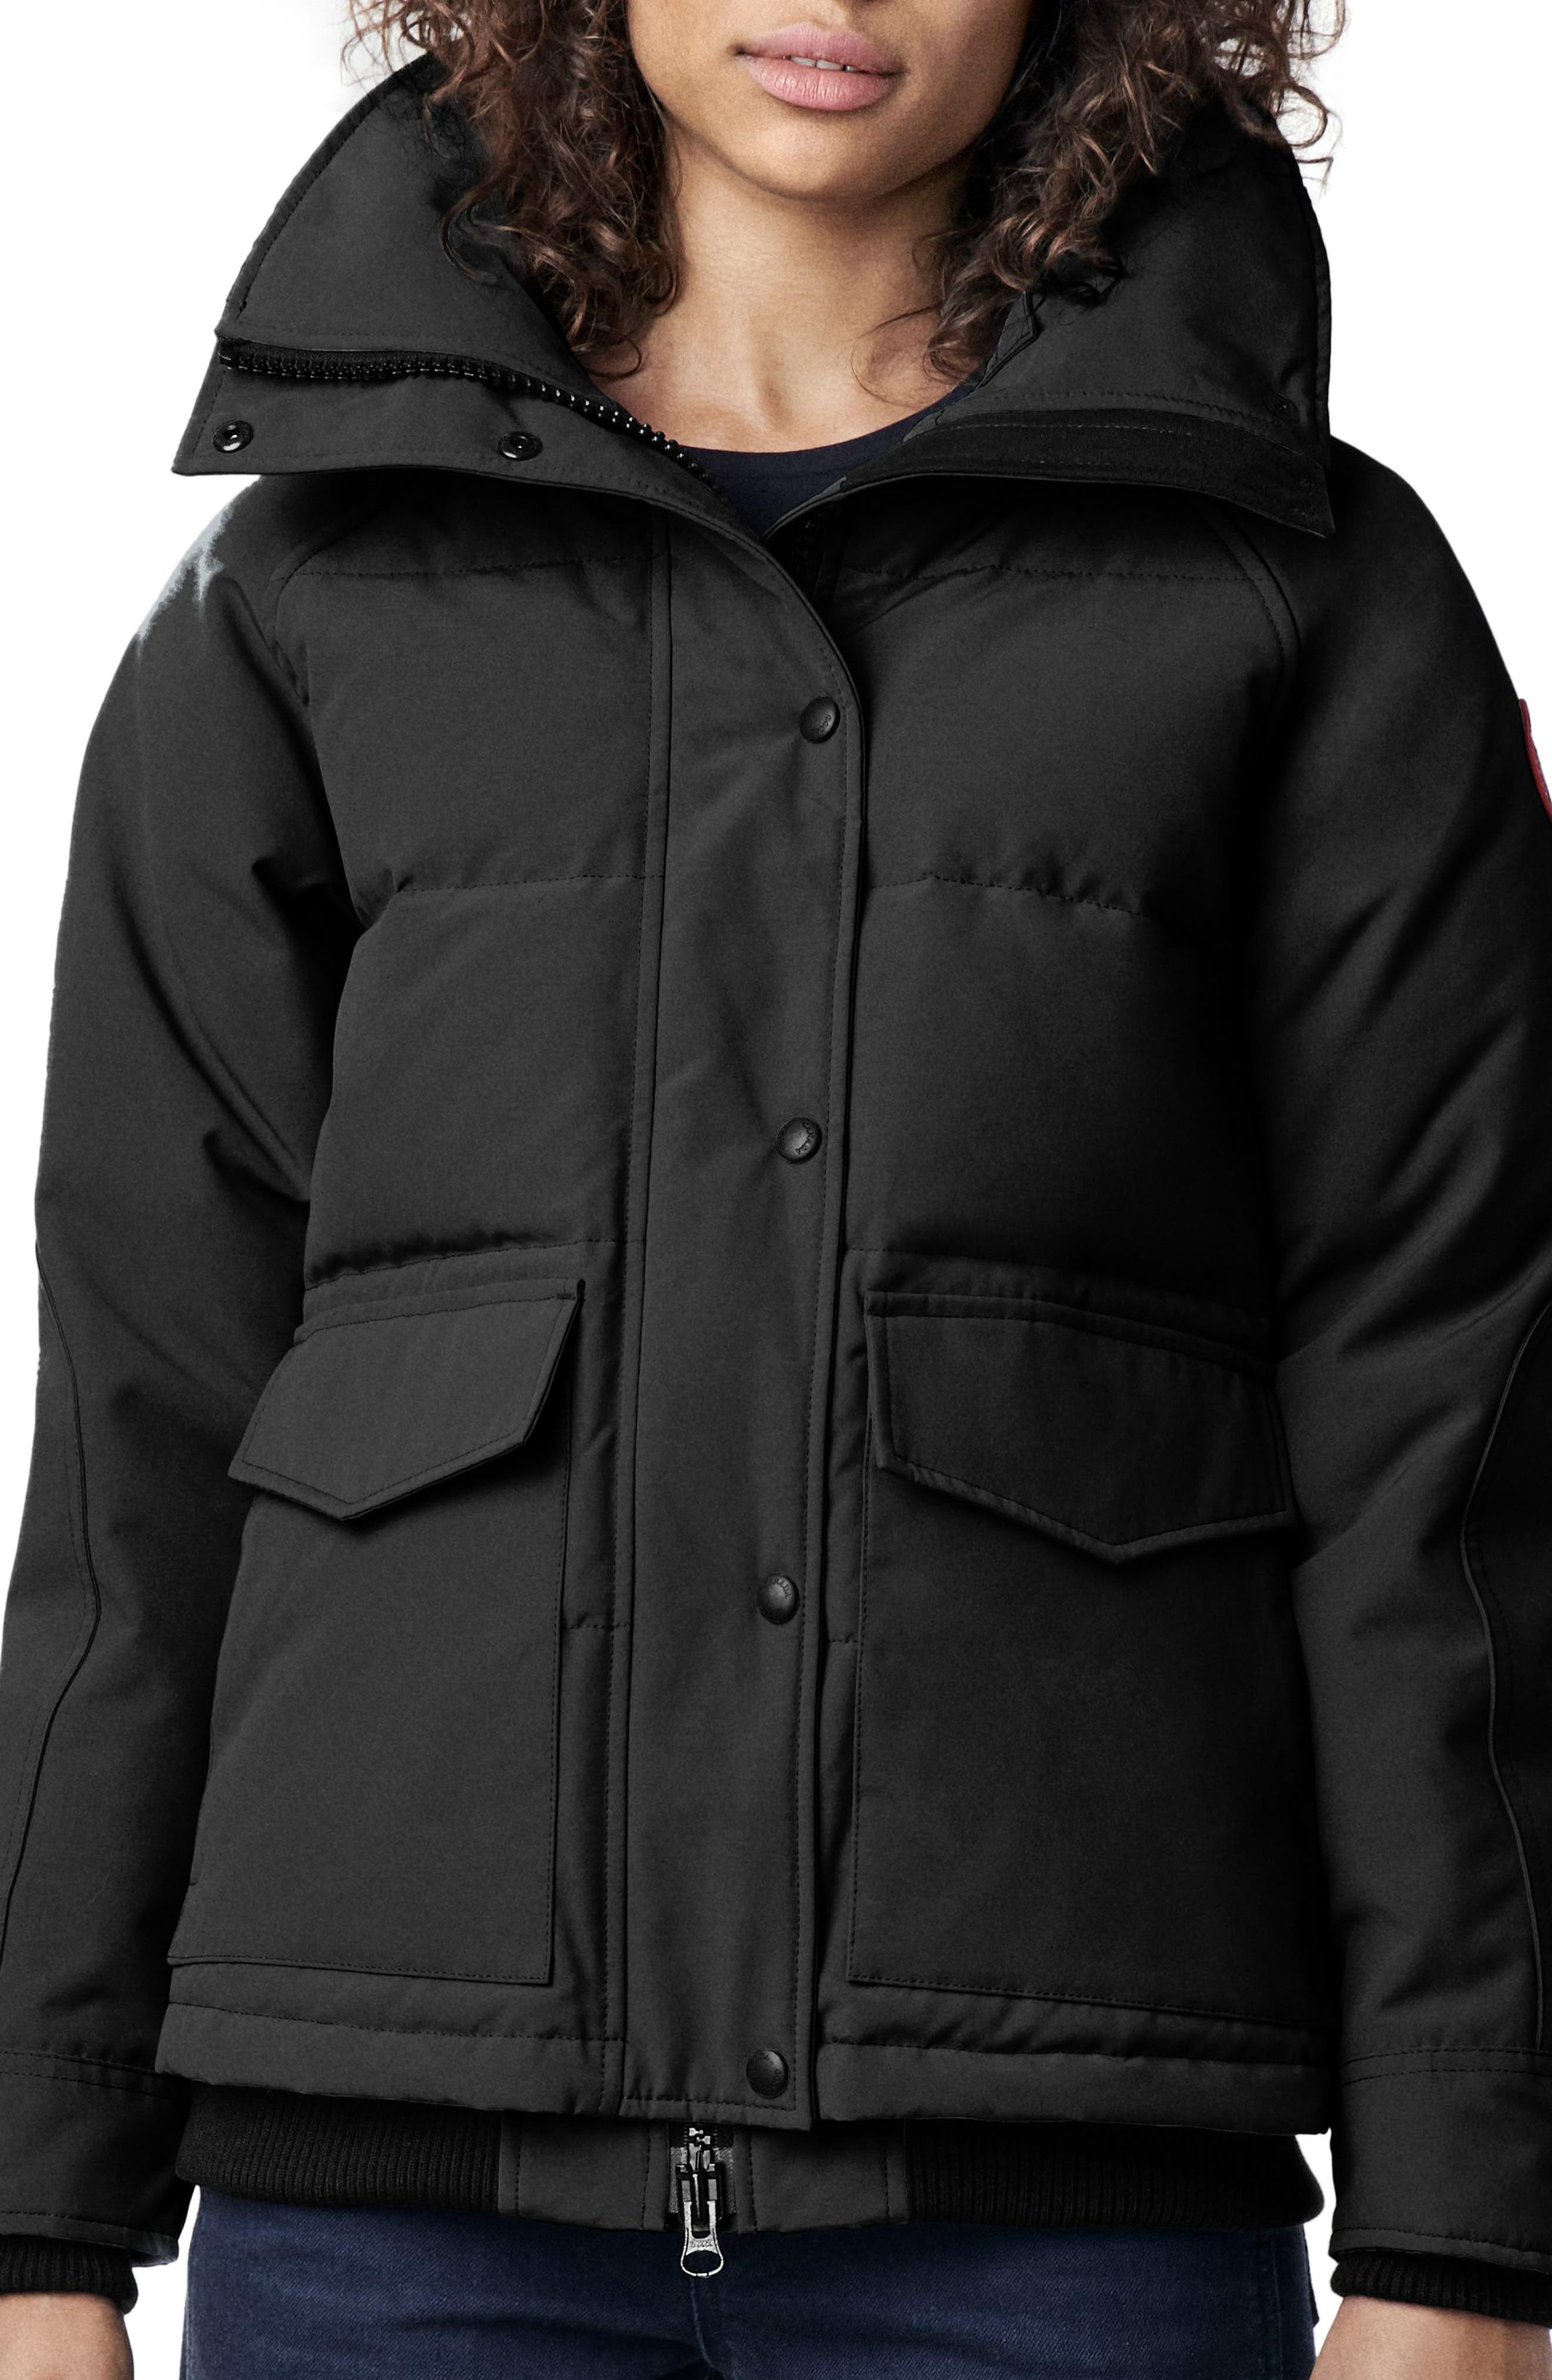 CANADA GOOSE, Deep Cove Arctic Tech Water Resistant 625 Fill Power Down Bomber Jacket, Main thumbnail 1, color, BLACK